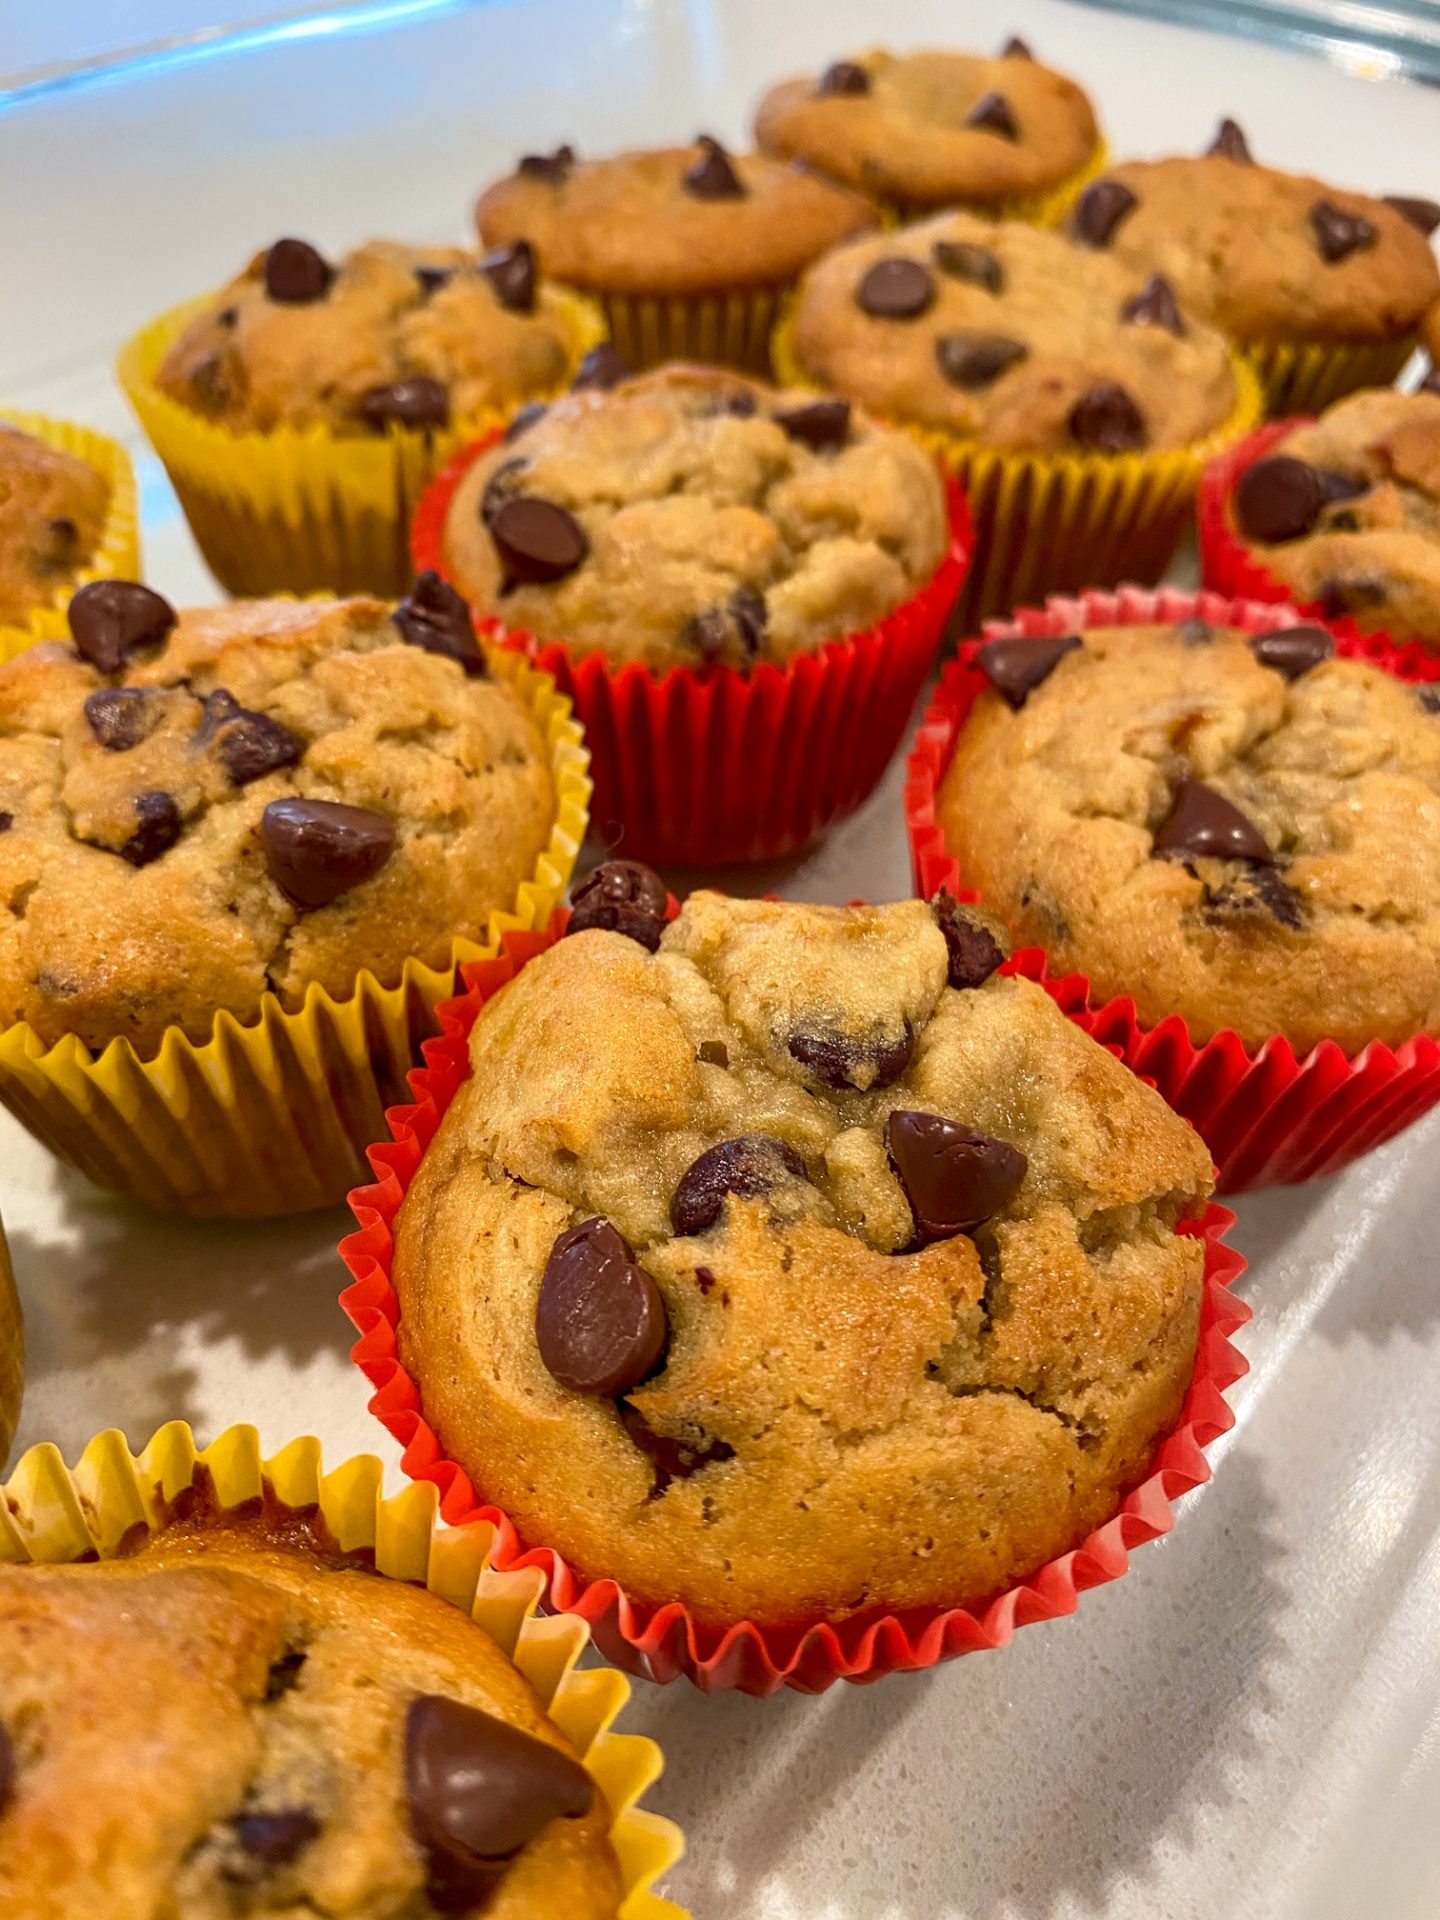 The BEST Chocolate Chip Banana Muffins You'll Ever Have!